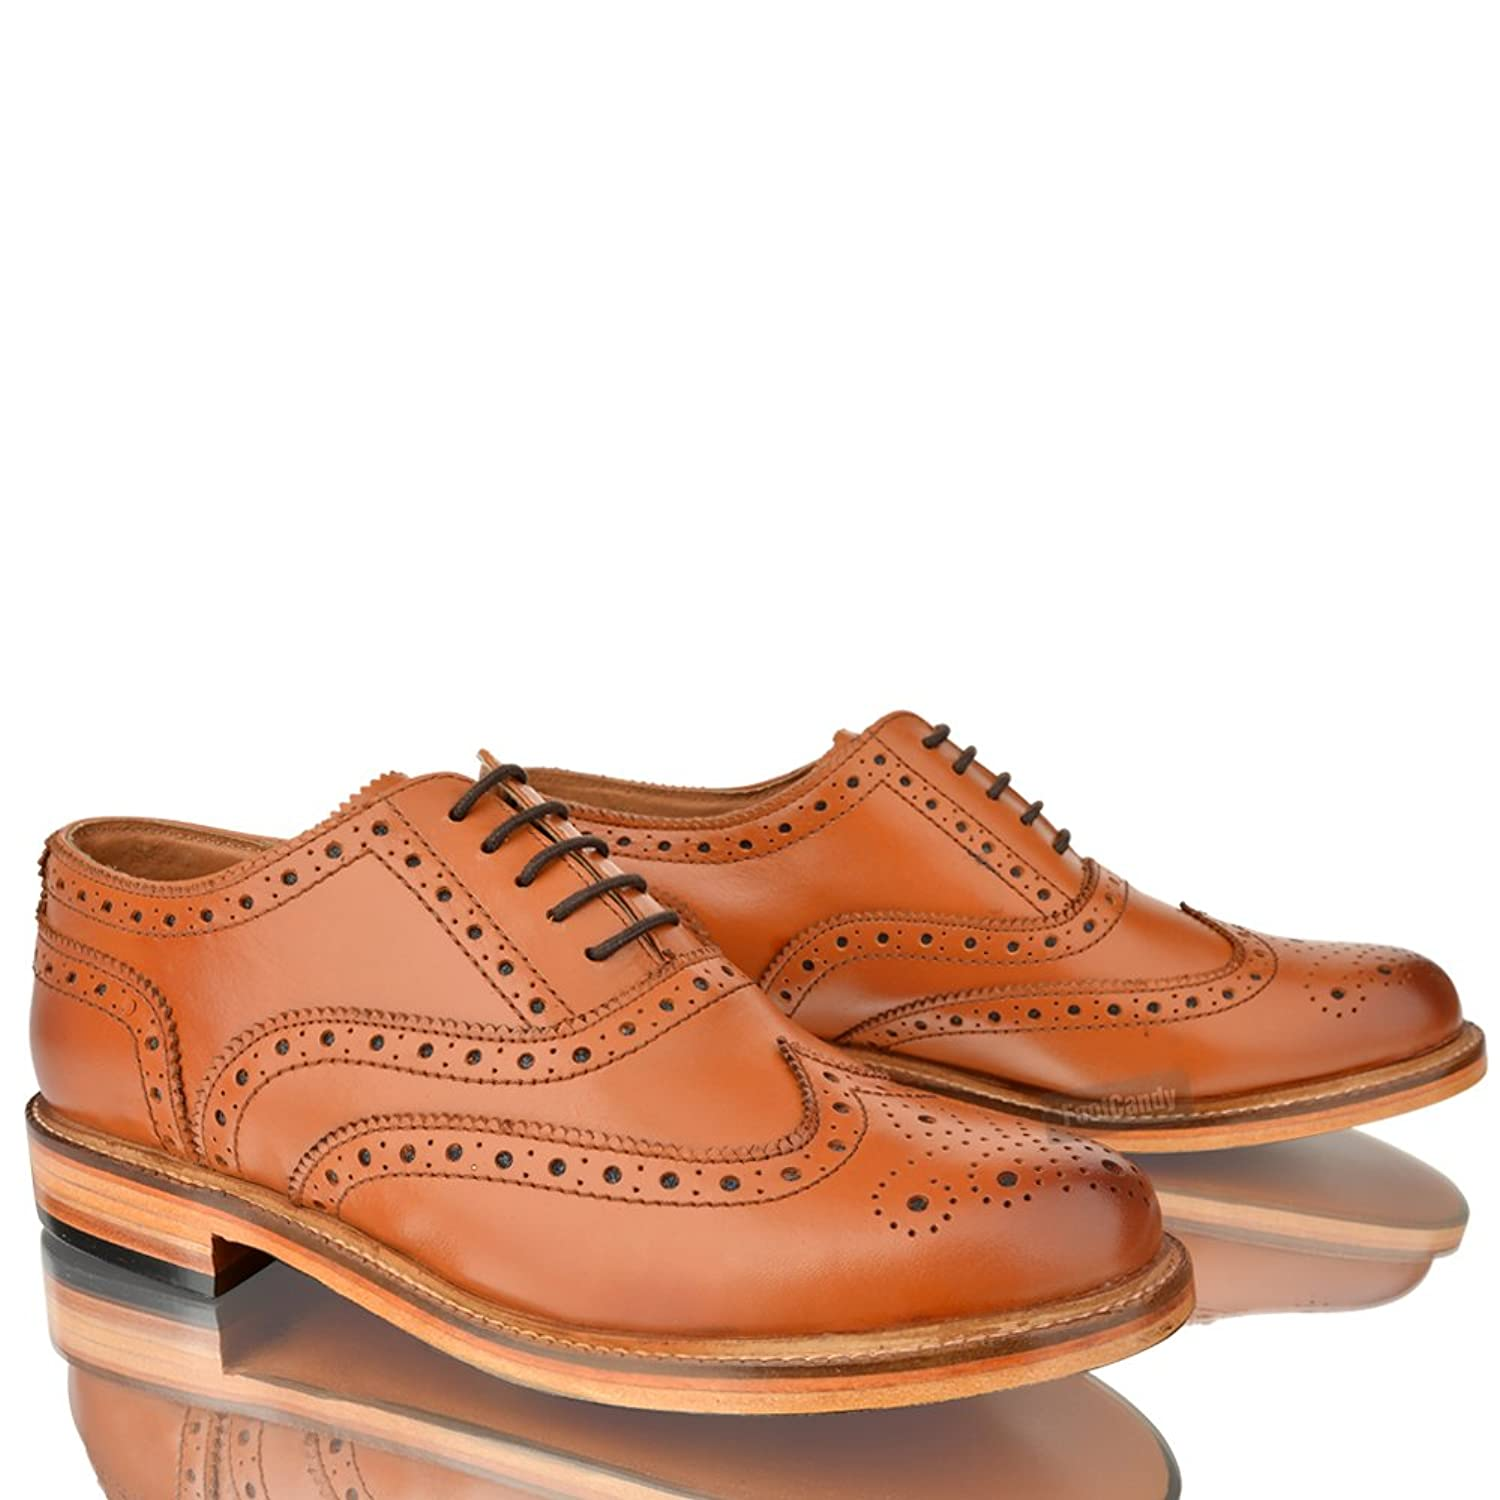 MENS LEATHER CASUAL OFFICE WORK SMART LACE UP BROGUE TAN PARTY SHOES BOOTS